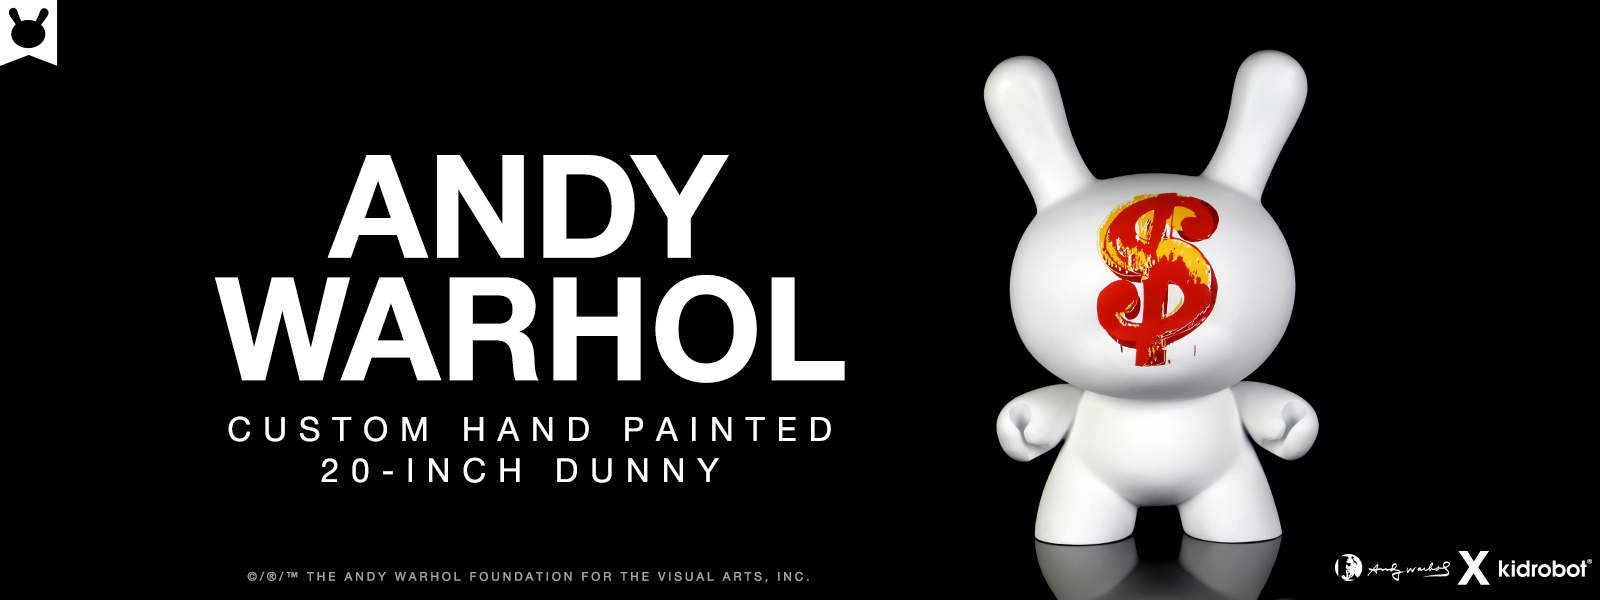 "Kidrobot x Andy Warhol 20"" Dollar Sign 1982 Dunny Sculpture"